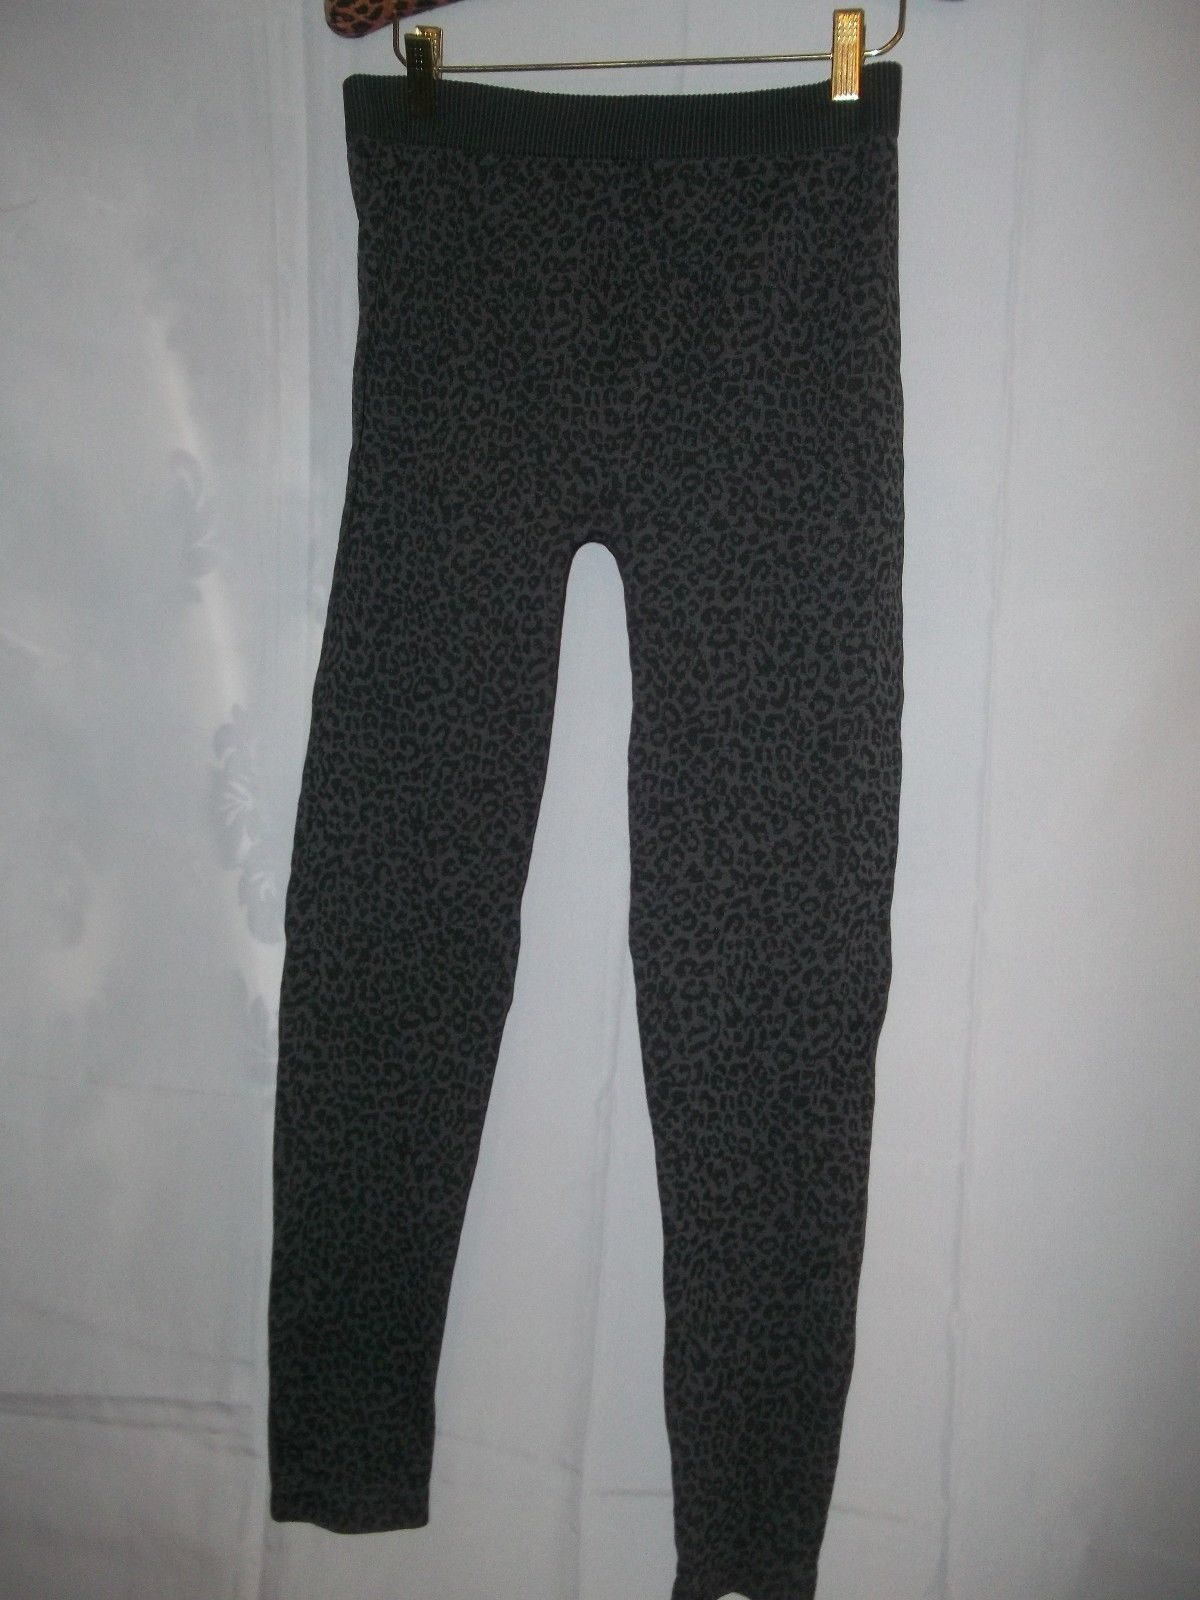 Primary image for Ladies Size O/S Gray / Black Animal Leopard Print Leggings Tights NWOT